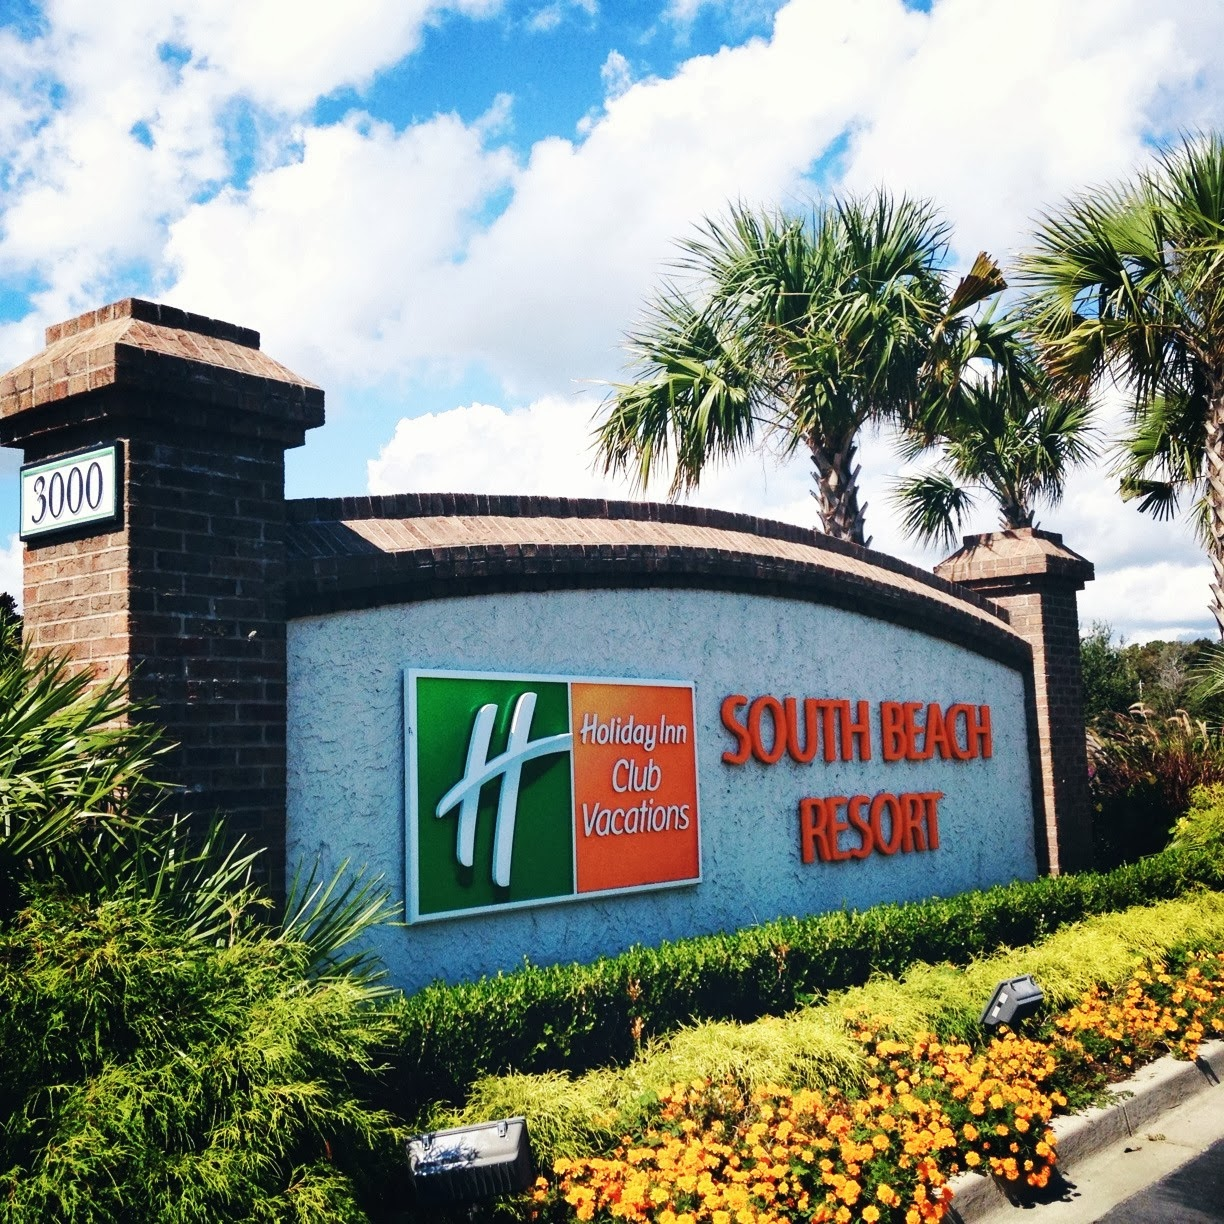 Holiday Inn Club Vacations South Beach Resort Myrtle Carolina Review